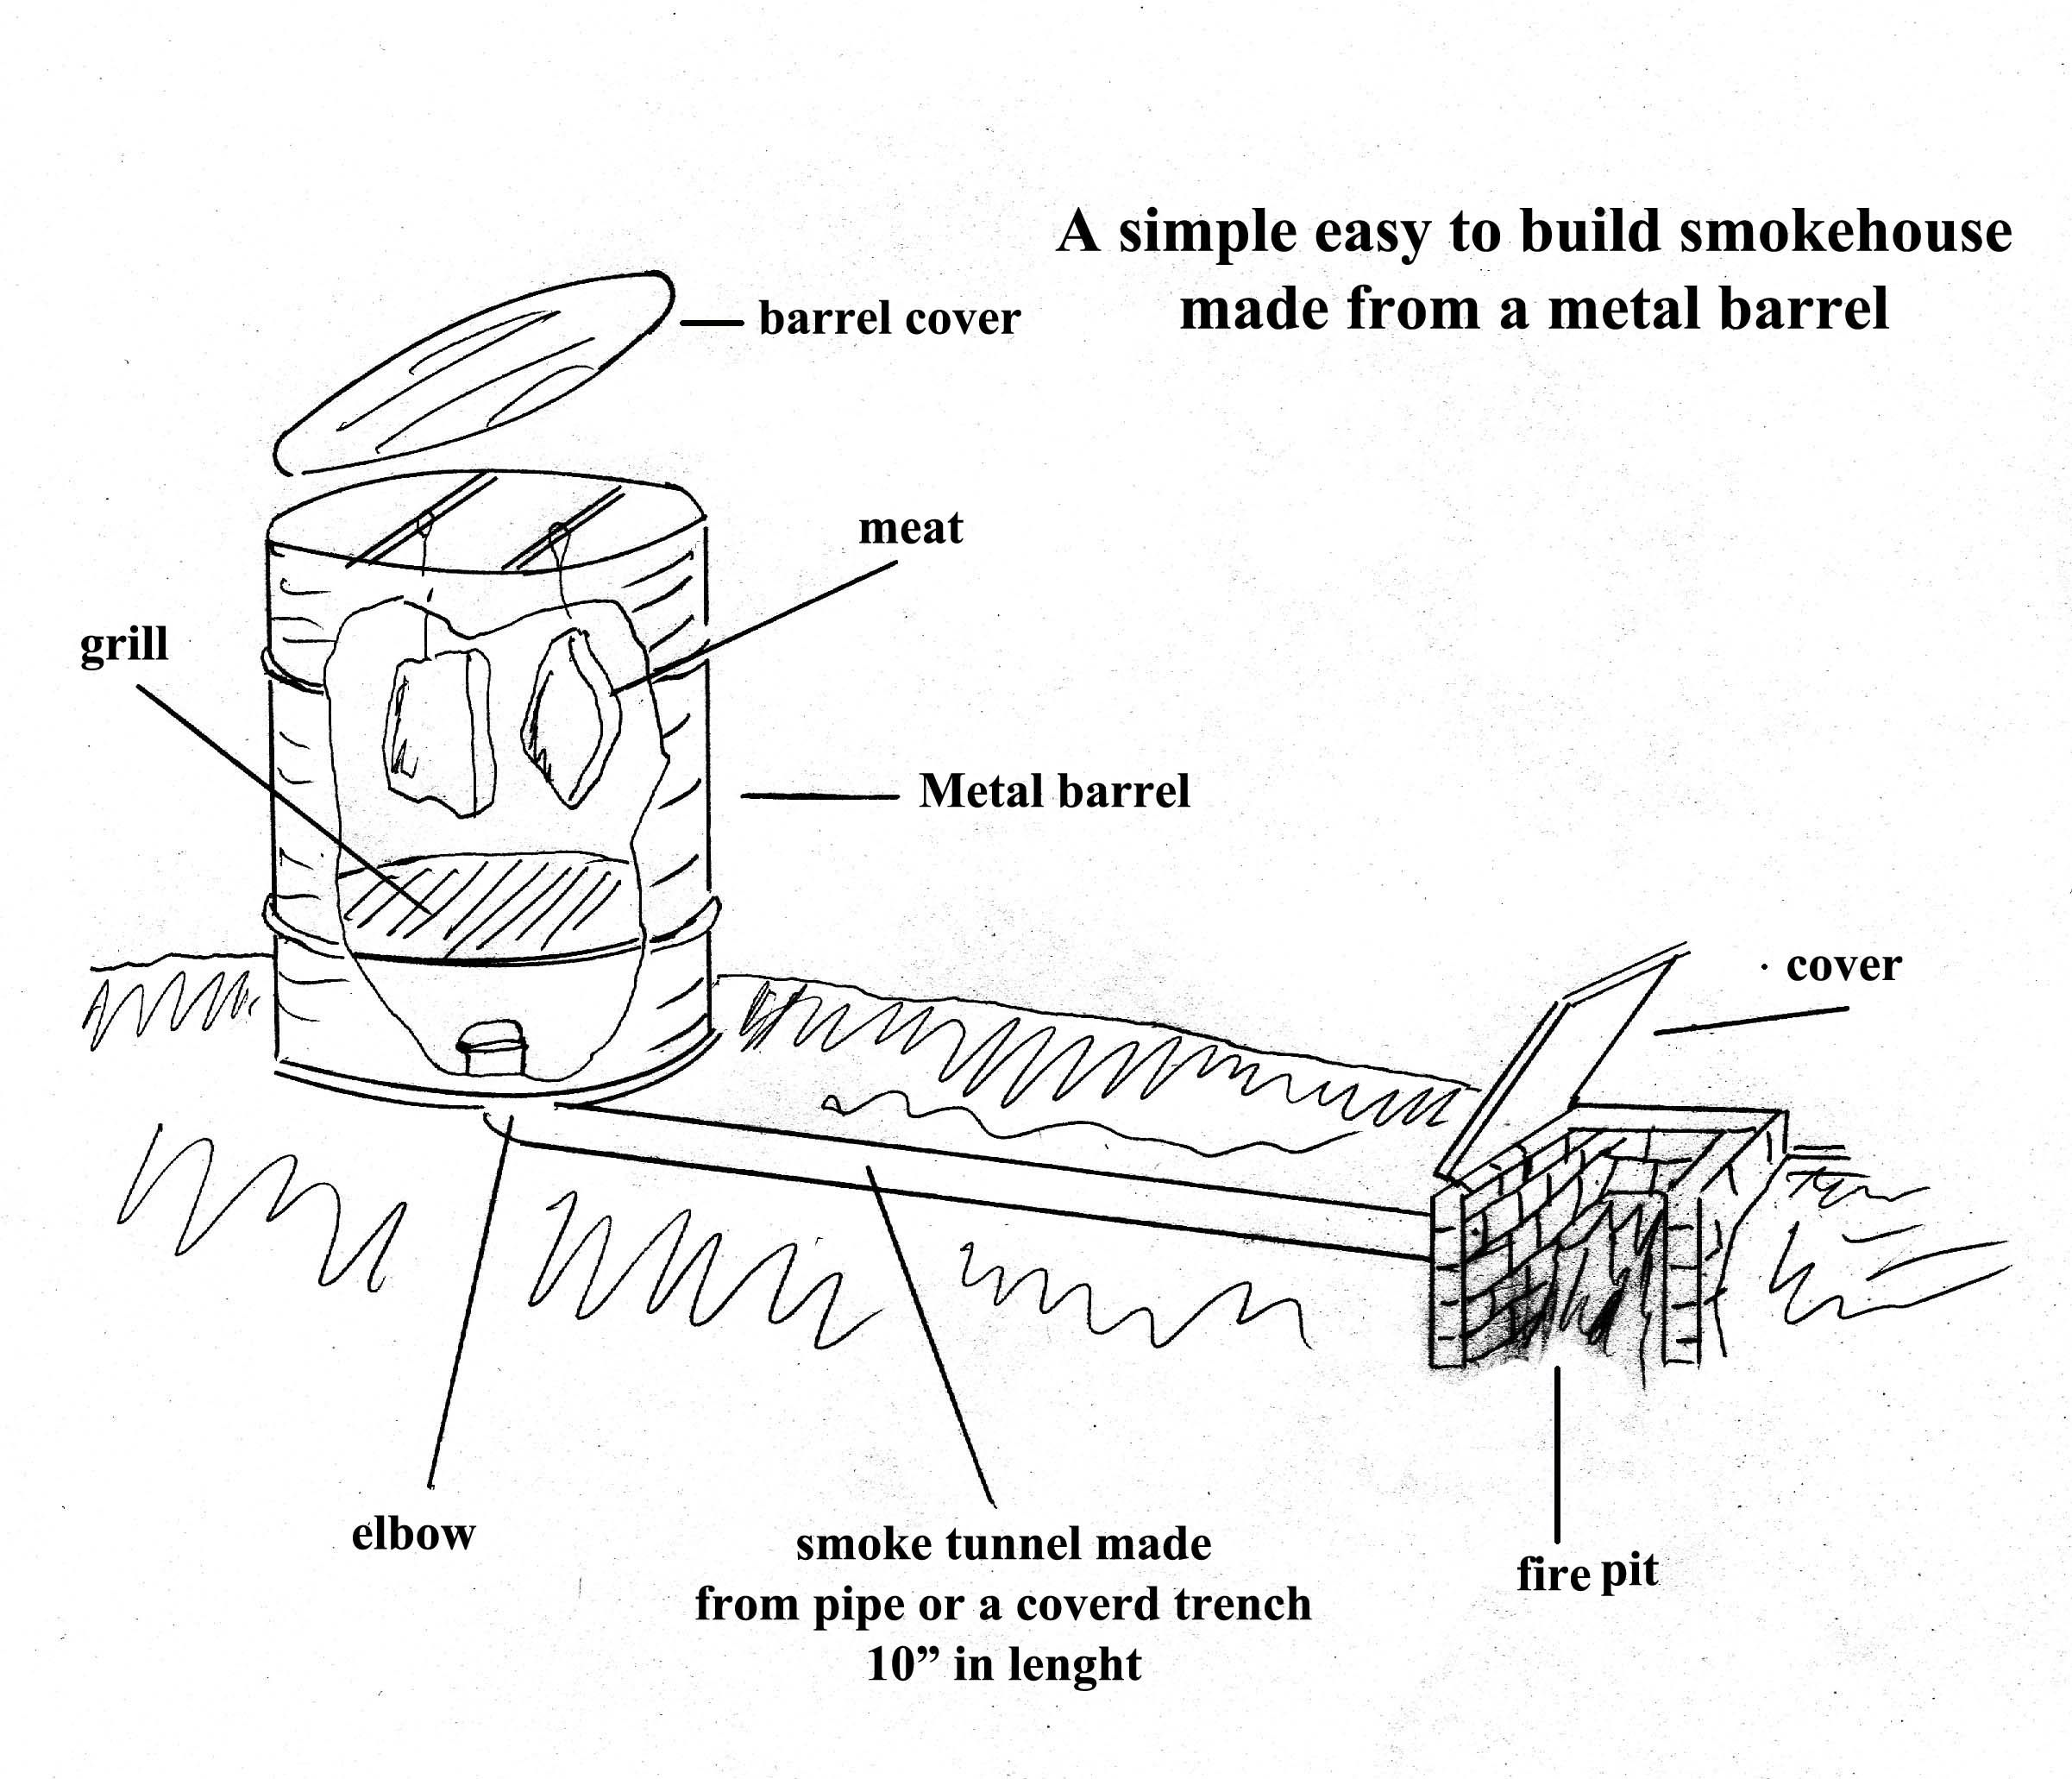 diagram of smoking meat